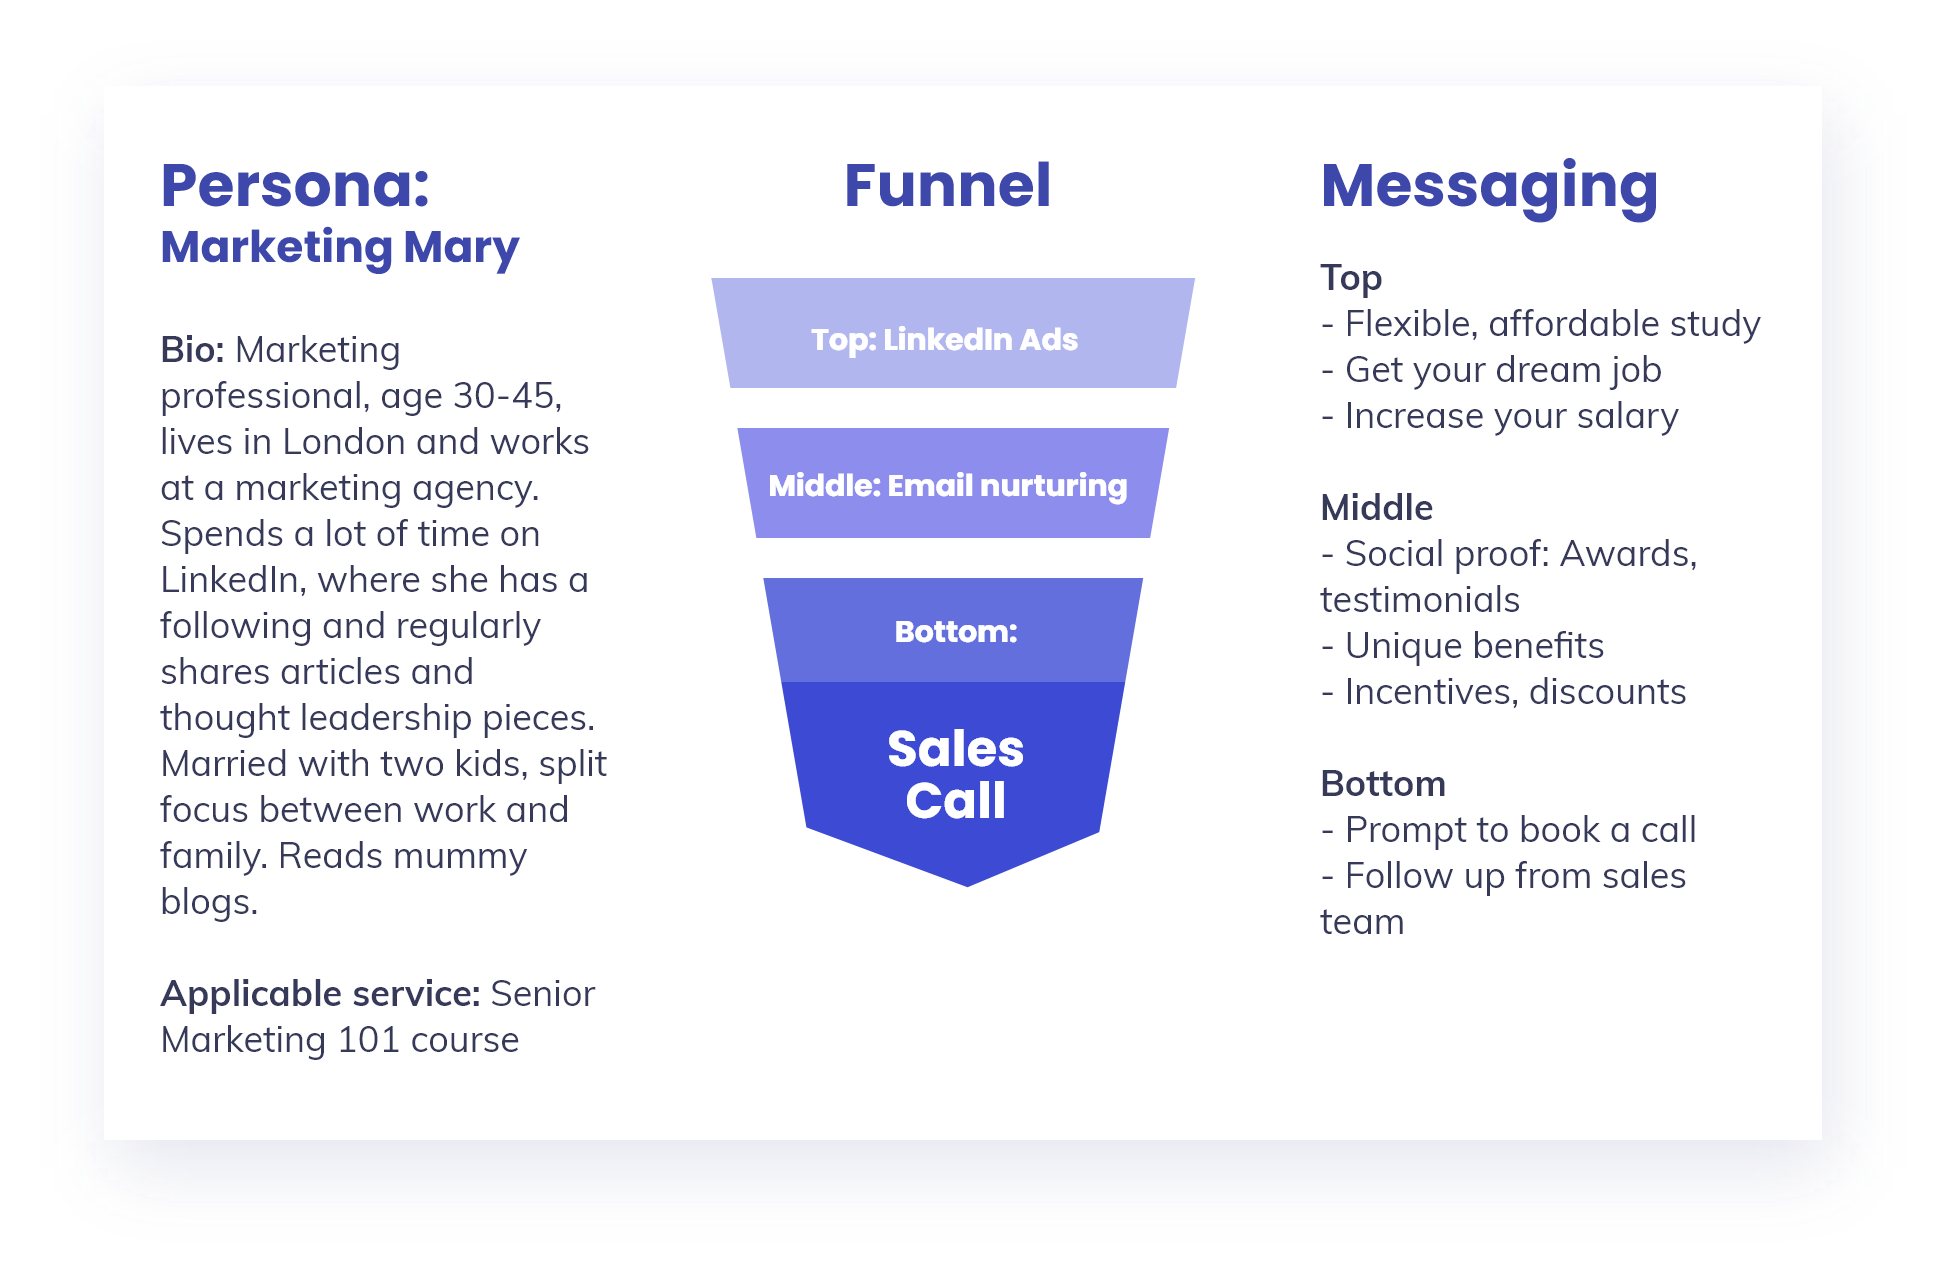 - A Beginner's Guide to Funnel Marketing: How To Set Up Effective Marketing Funnels in Five Steps